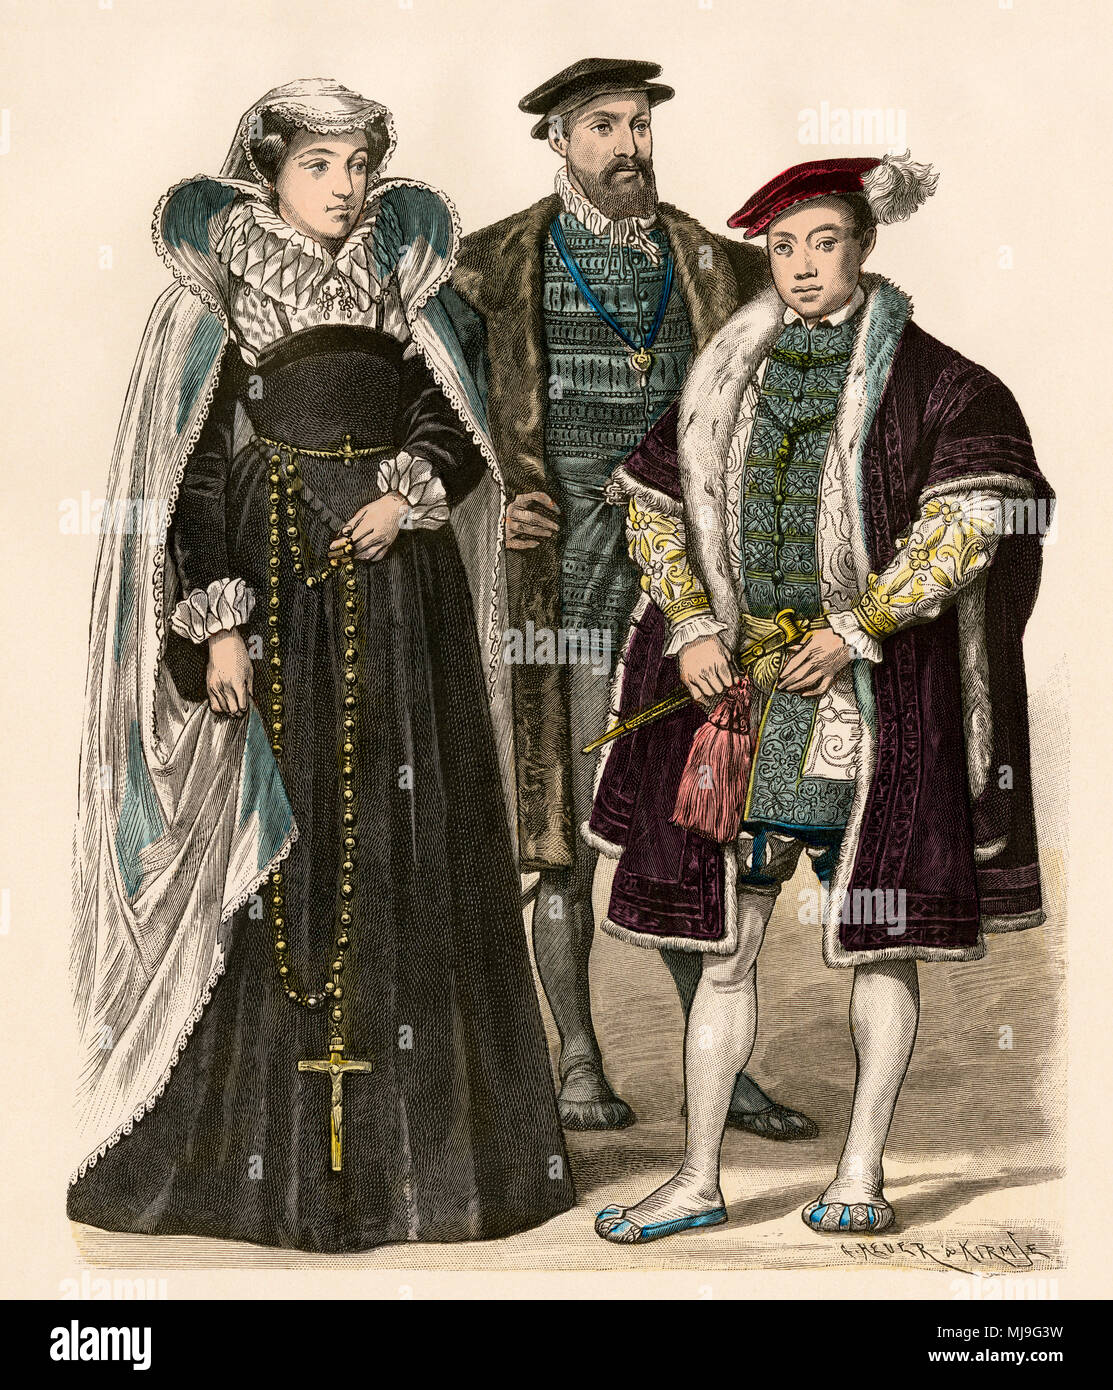 Mary, Queen of Scots, with Archibald Douglas, Earl of Angus, and his nephew Edward VI of England. Hand-colored print - Stock Image